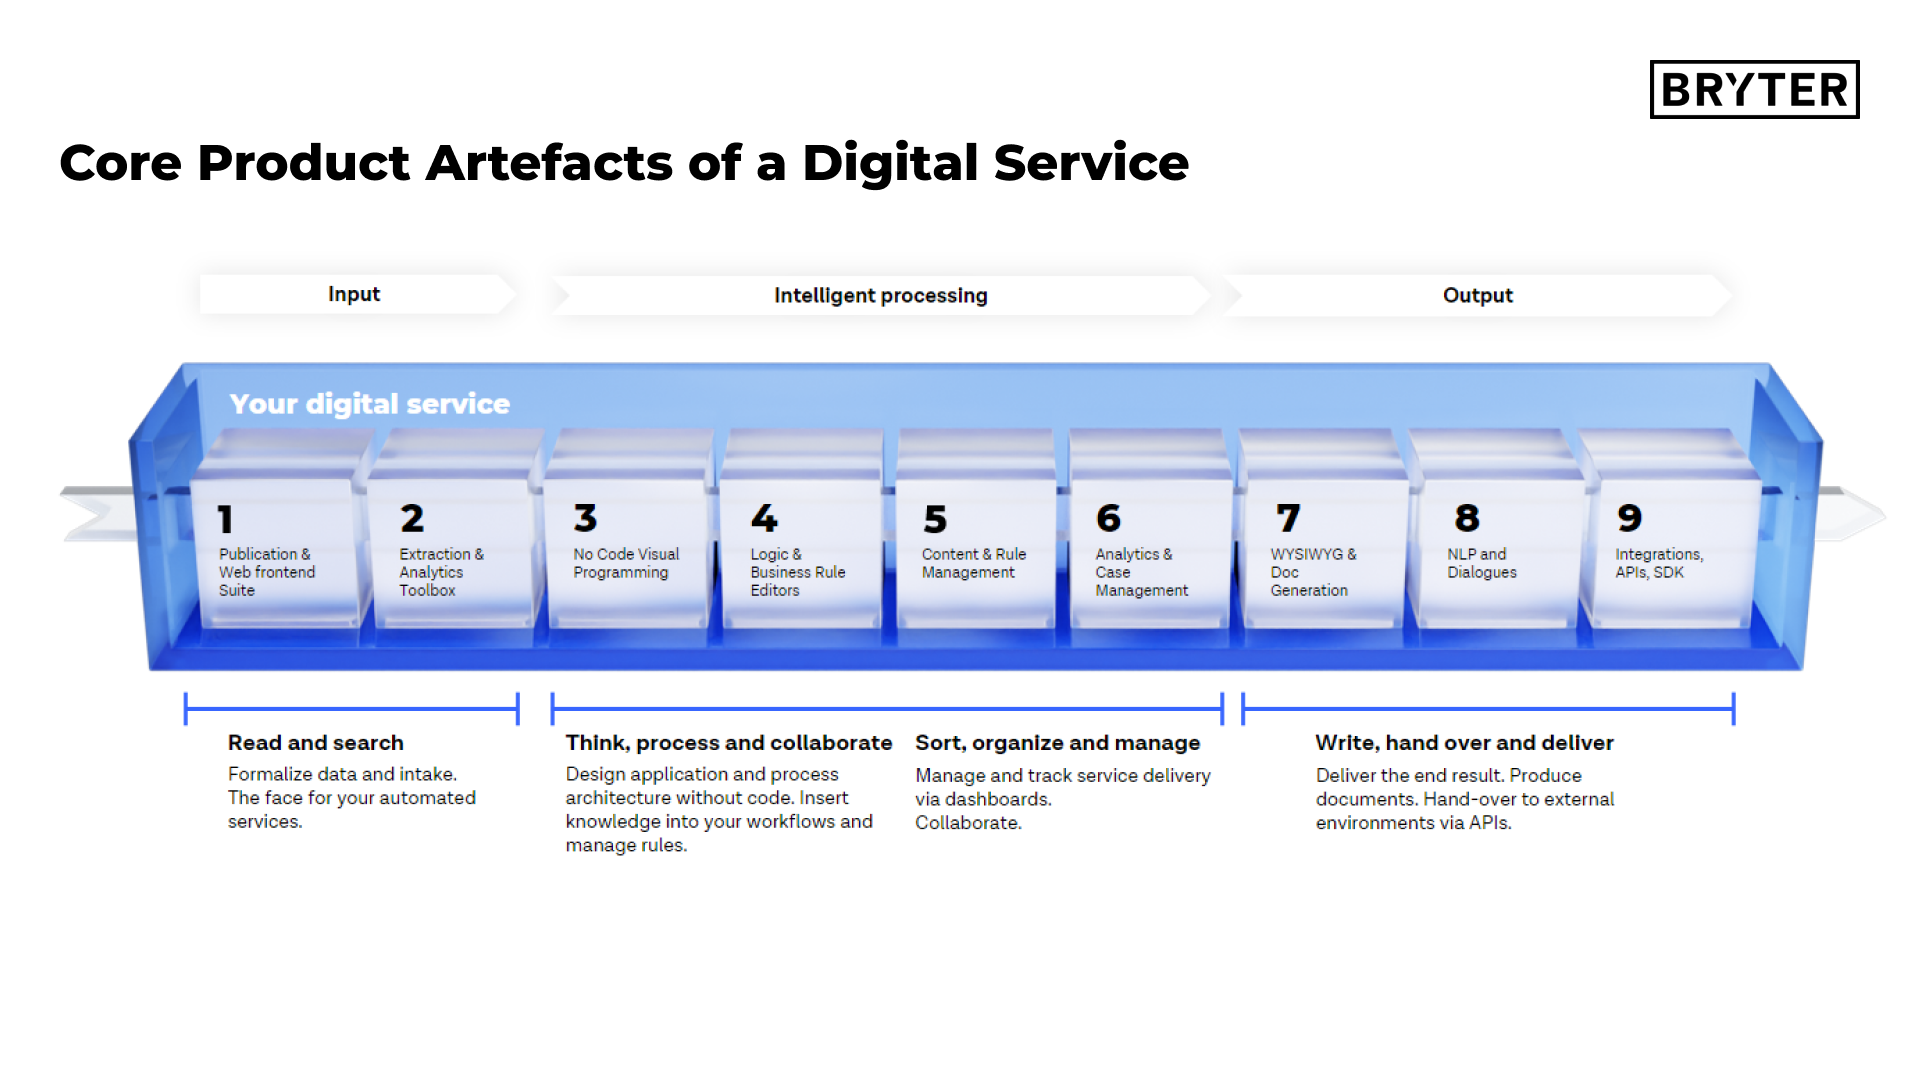 Core Product Artefacts of a Digital Service